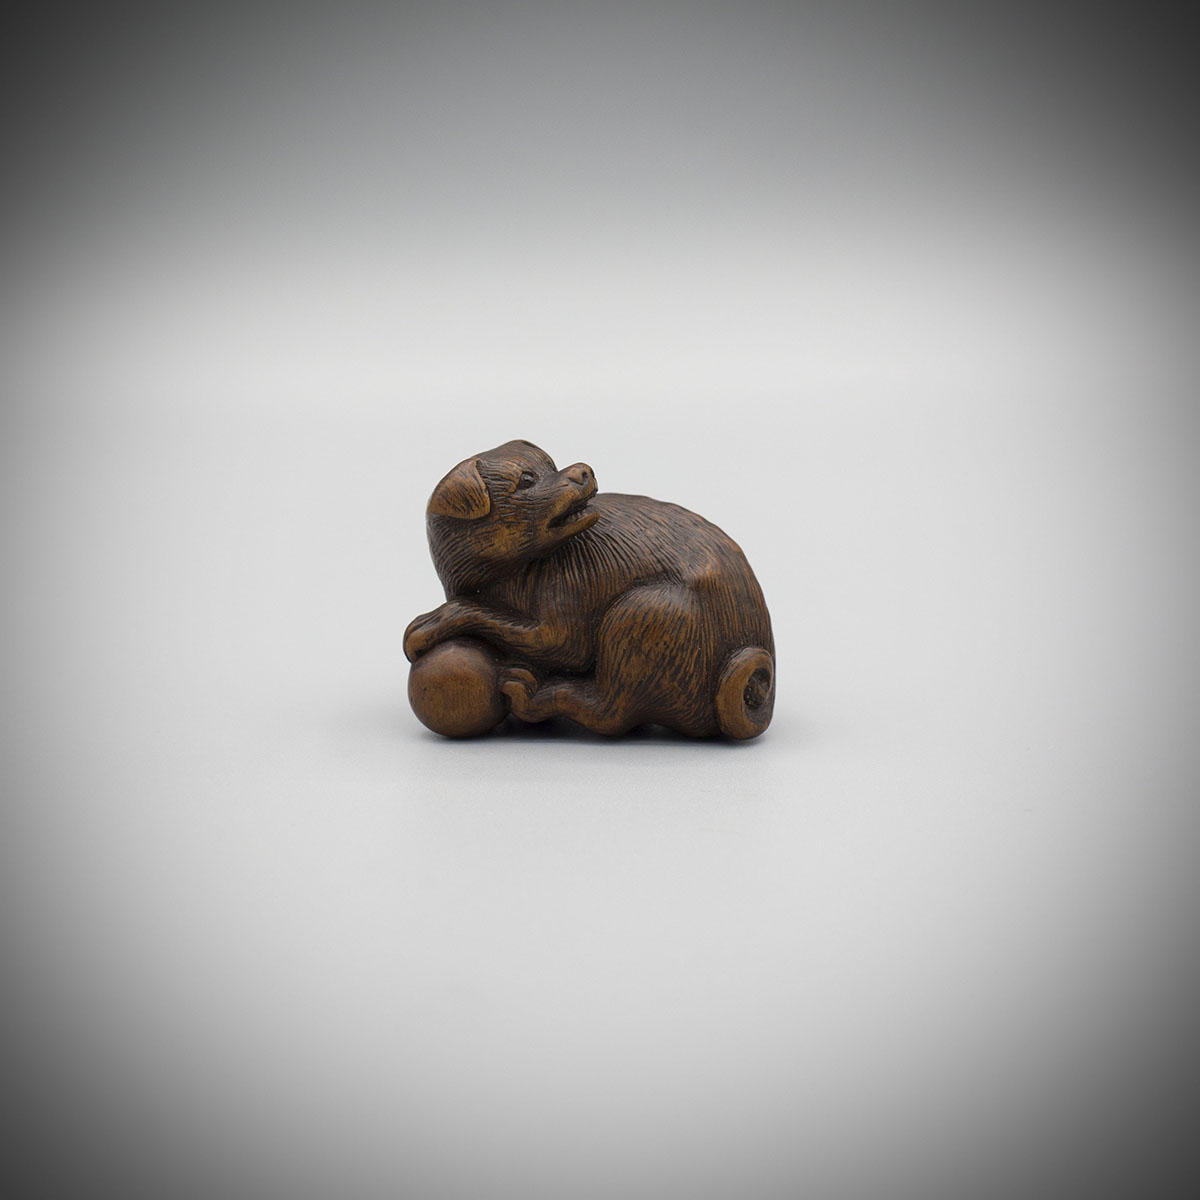 Boxwood netsuke of a dog, Tametaka, MR2954_v1